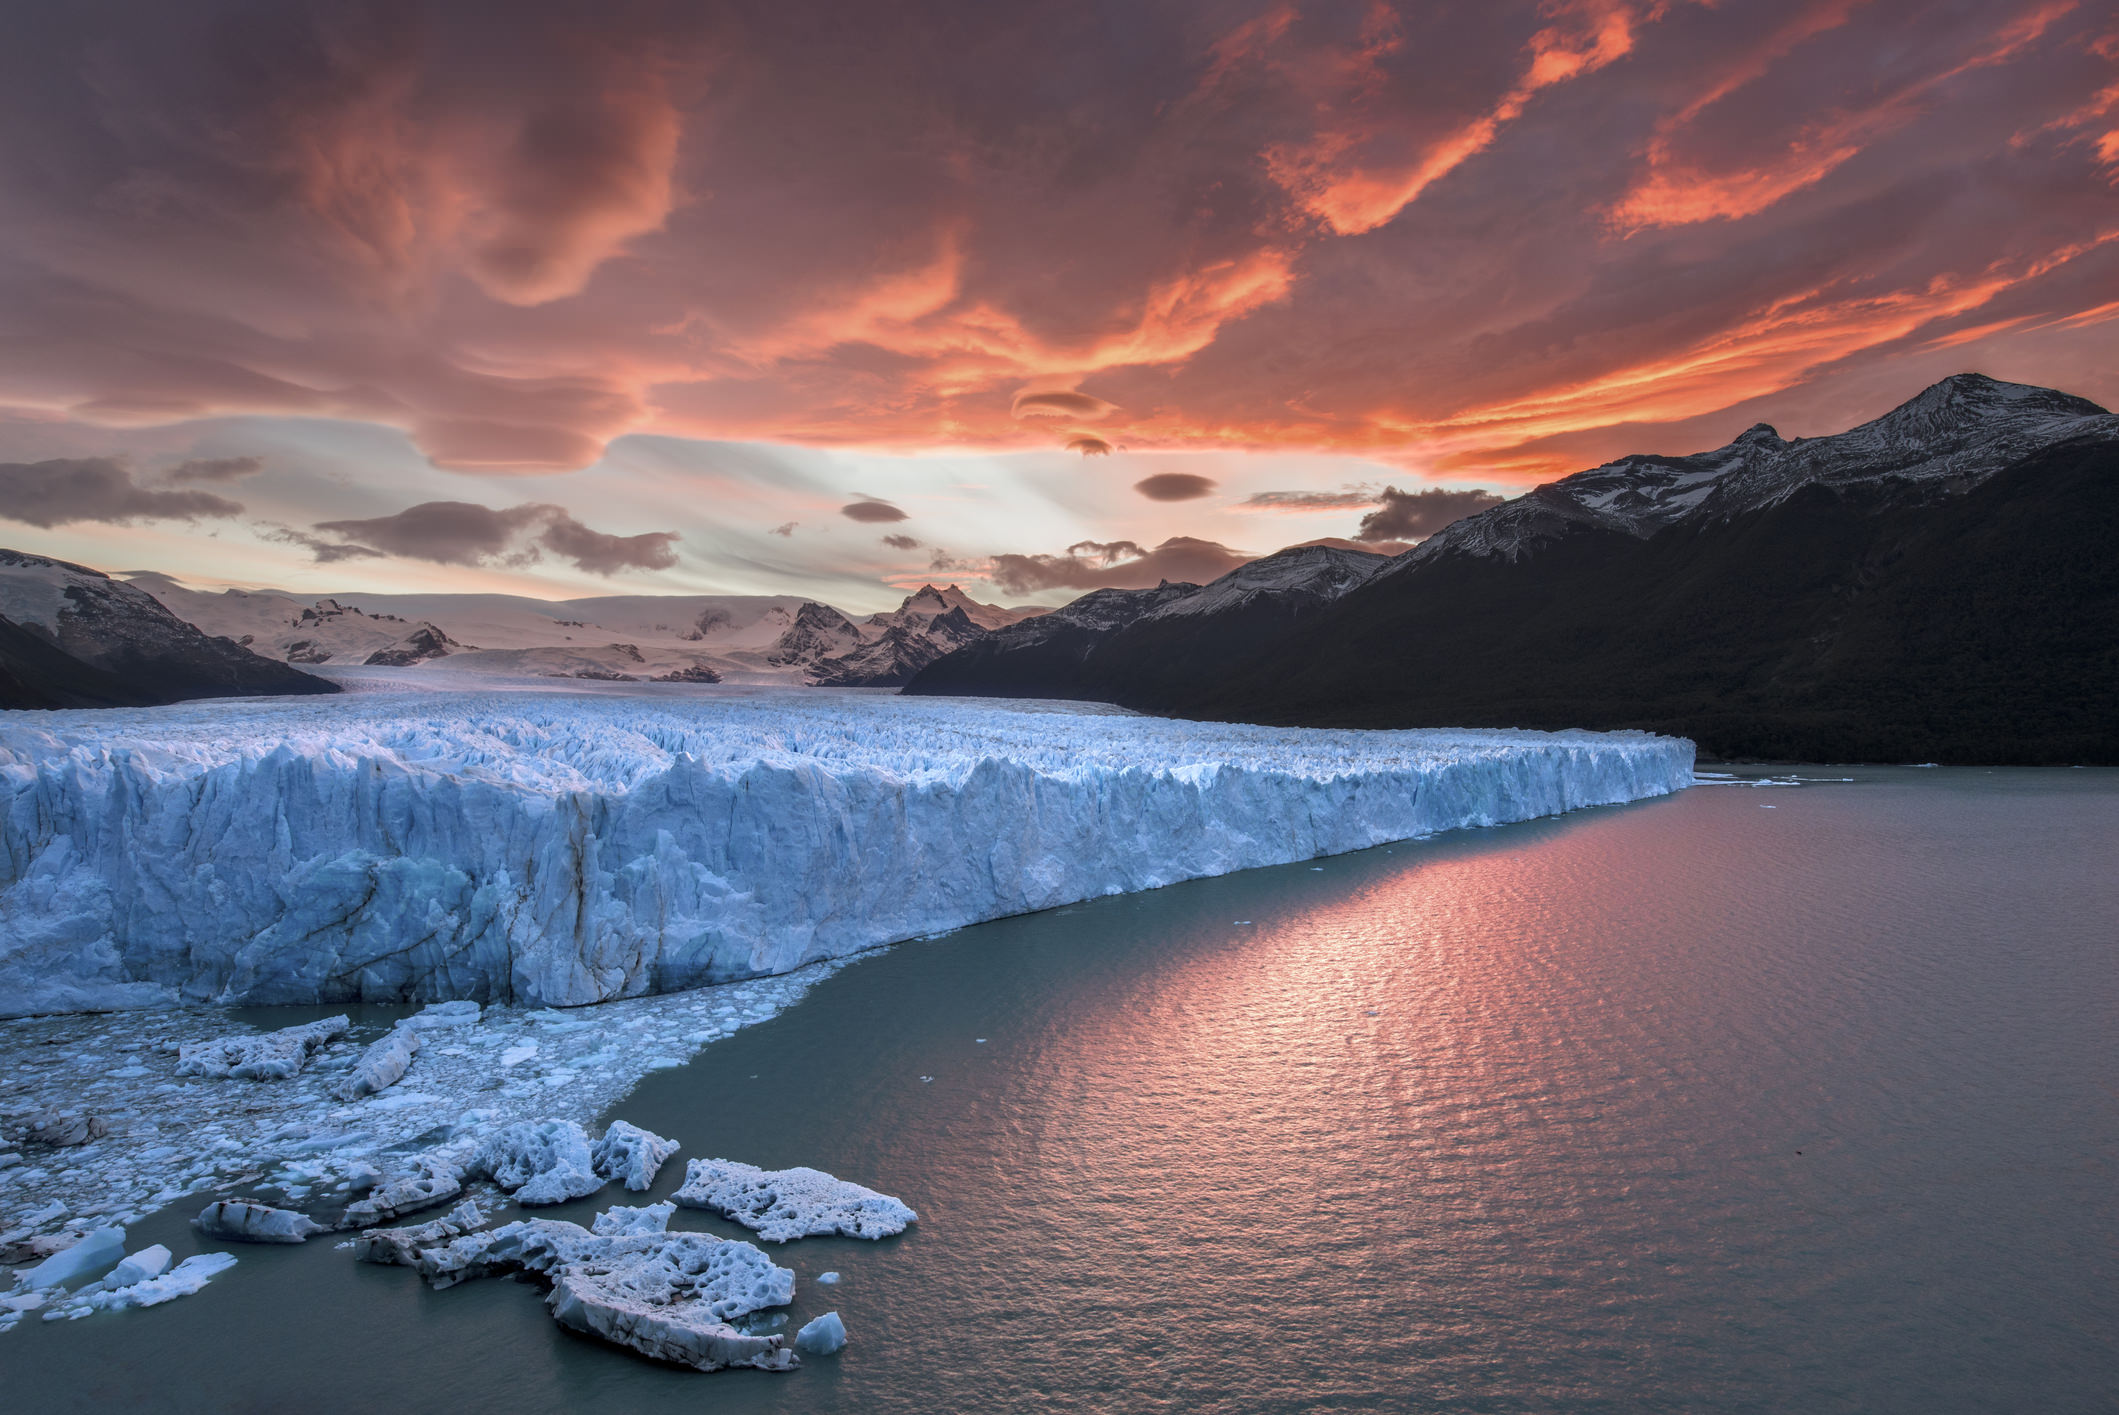 9 Incredible Landscape Images Trending Right Now